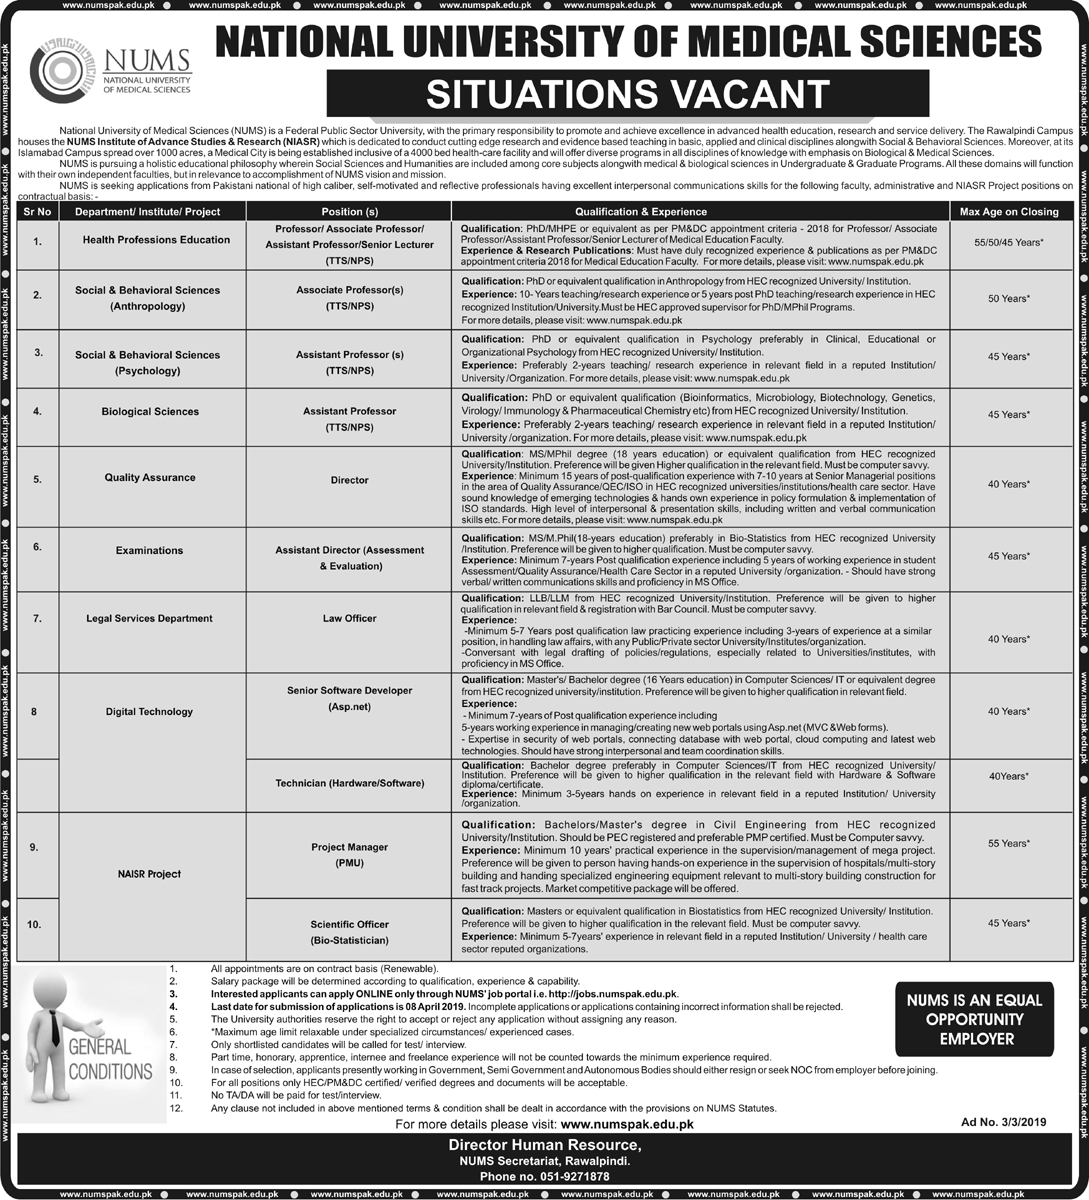 Advertisement for NUMS Jobs March 2019